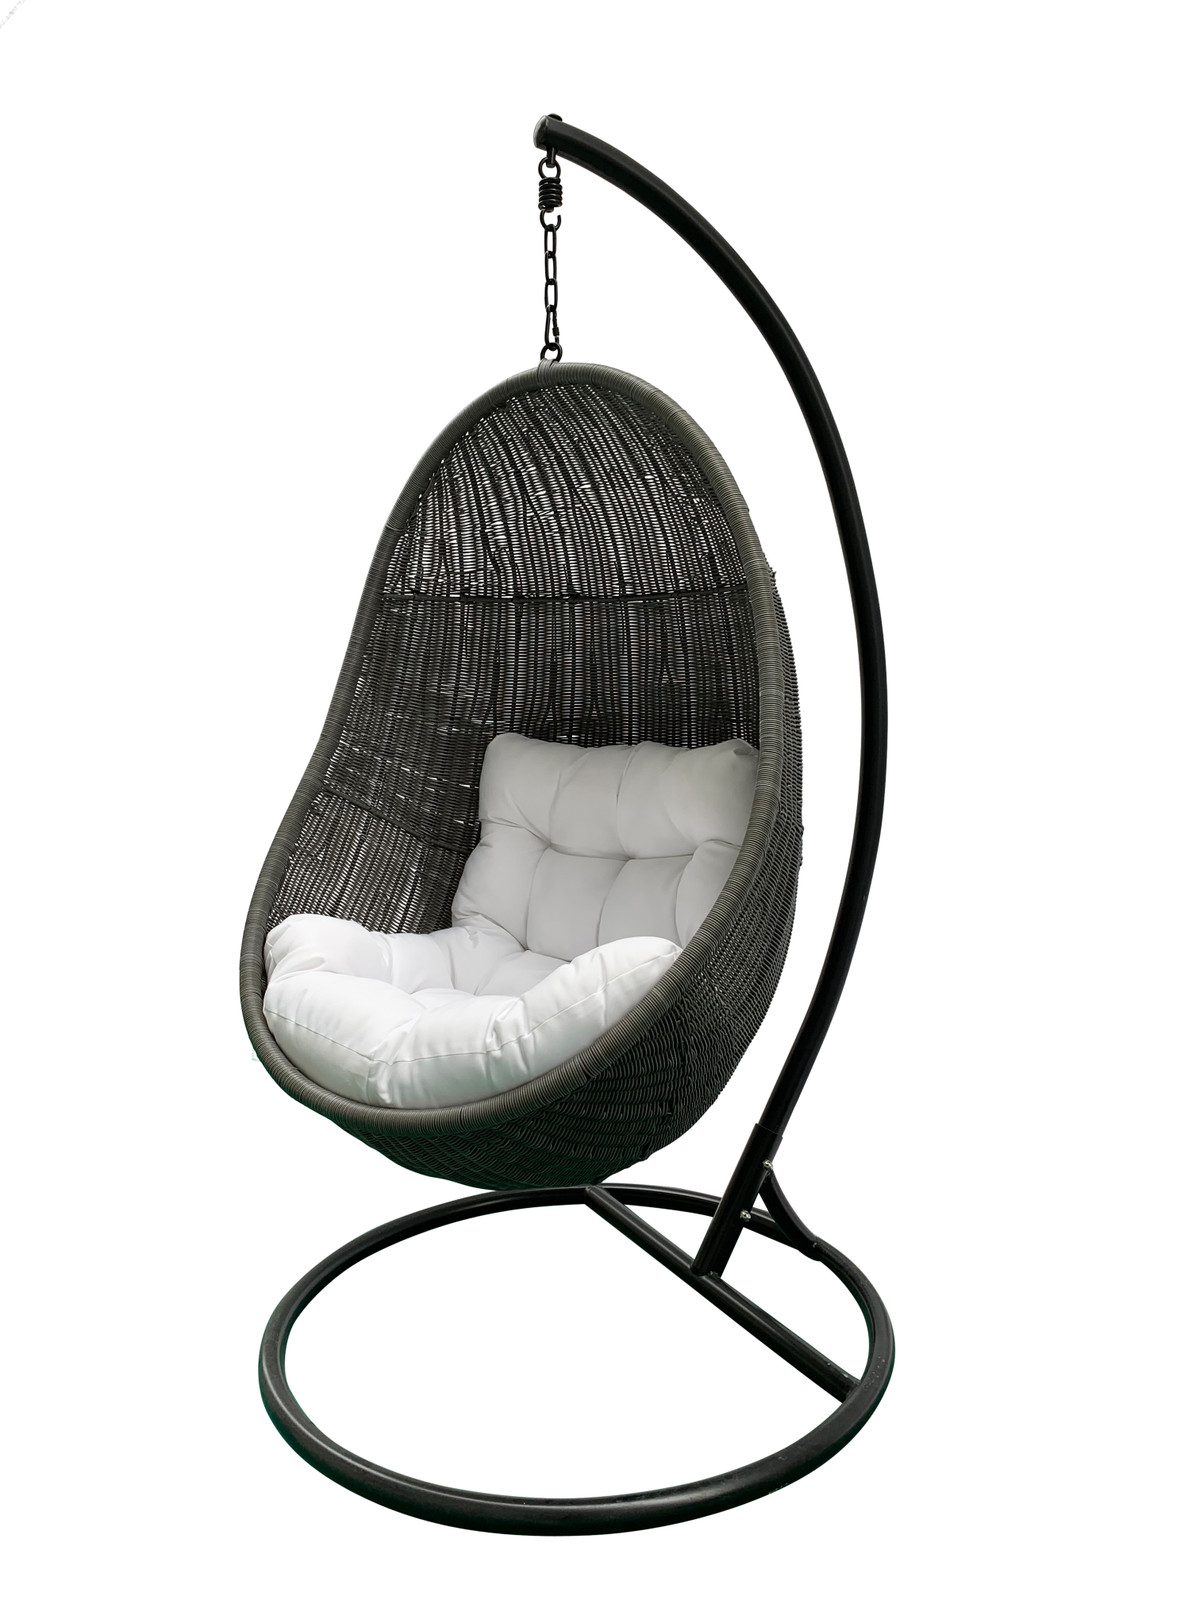 ella outdoor hanging egg chair sold out pre orders taken now for june shipment